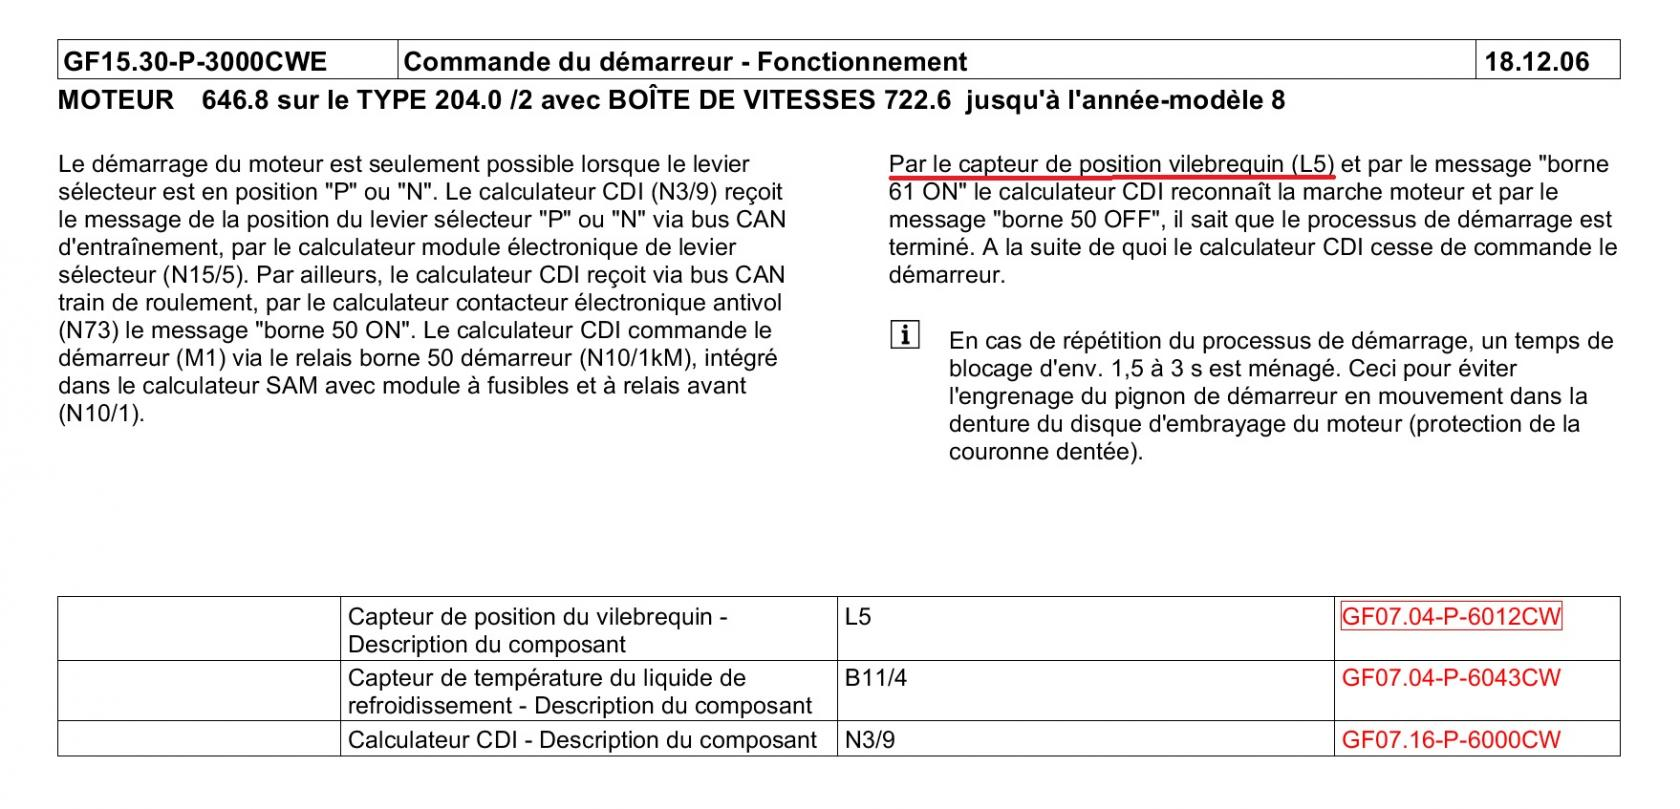 Fontionnement-demarrage-cdi-2-Wdd2040081a198844.jpeg